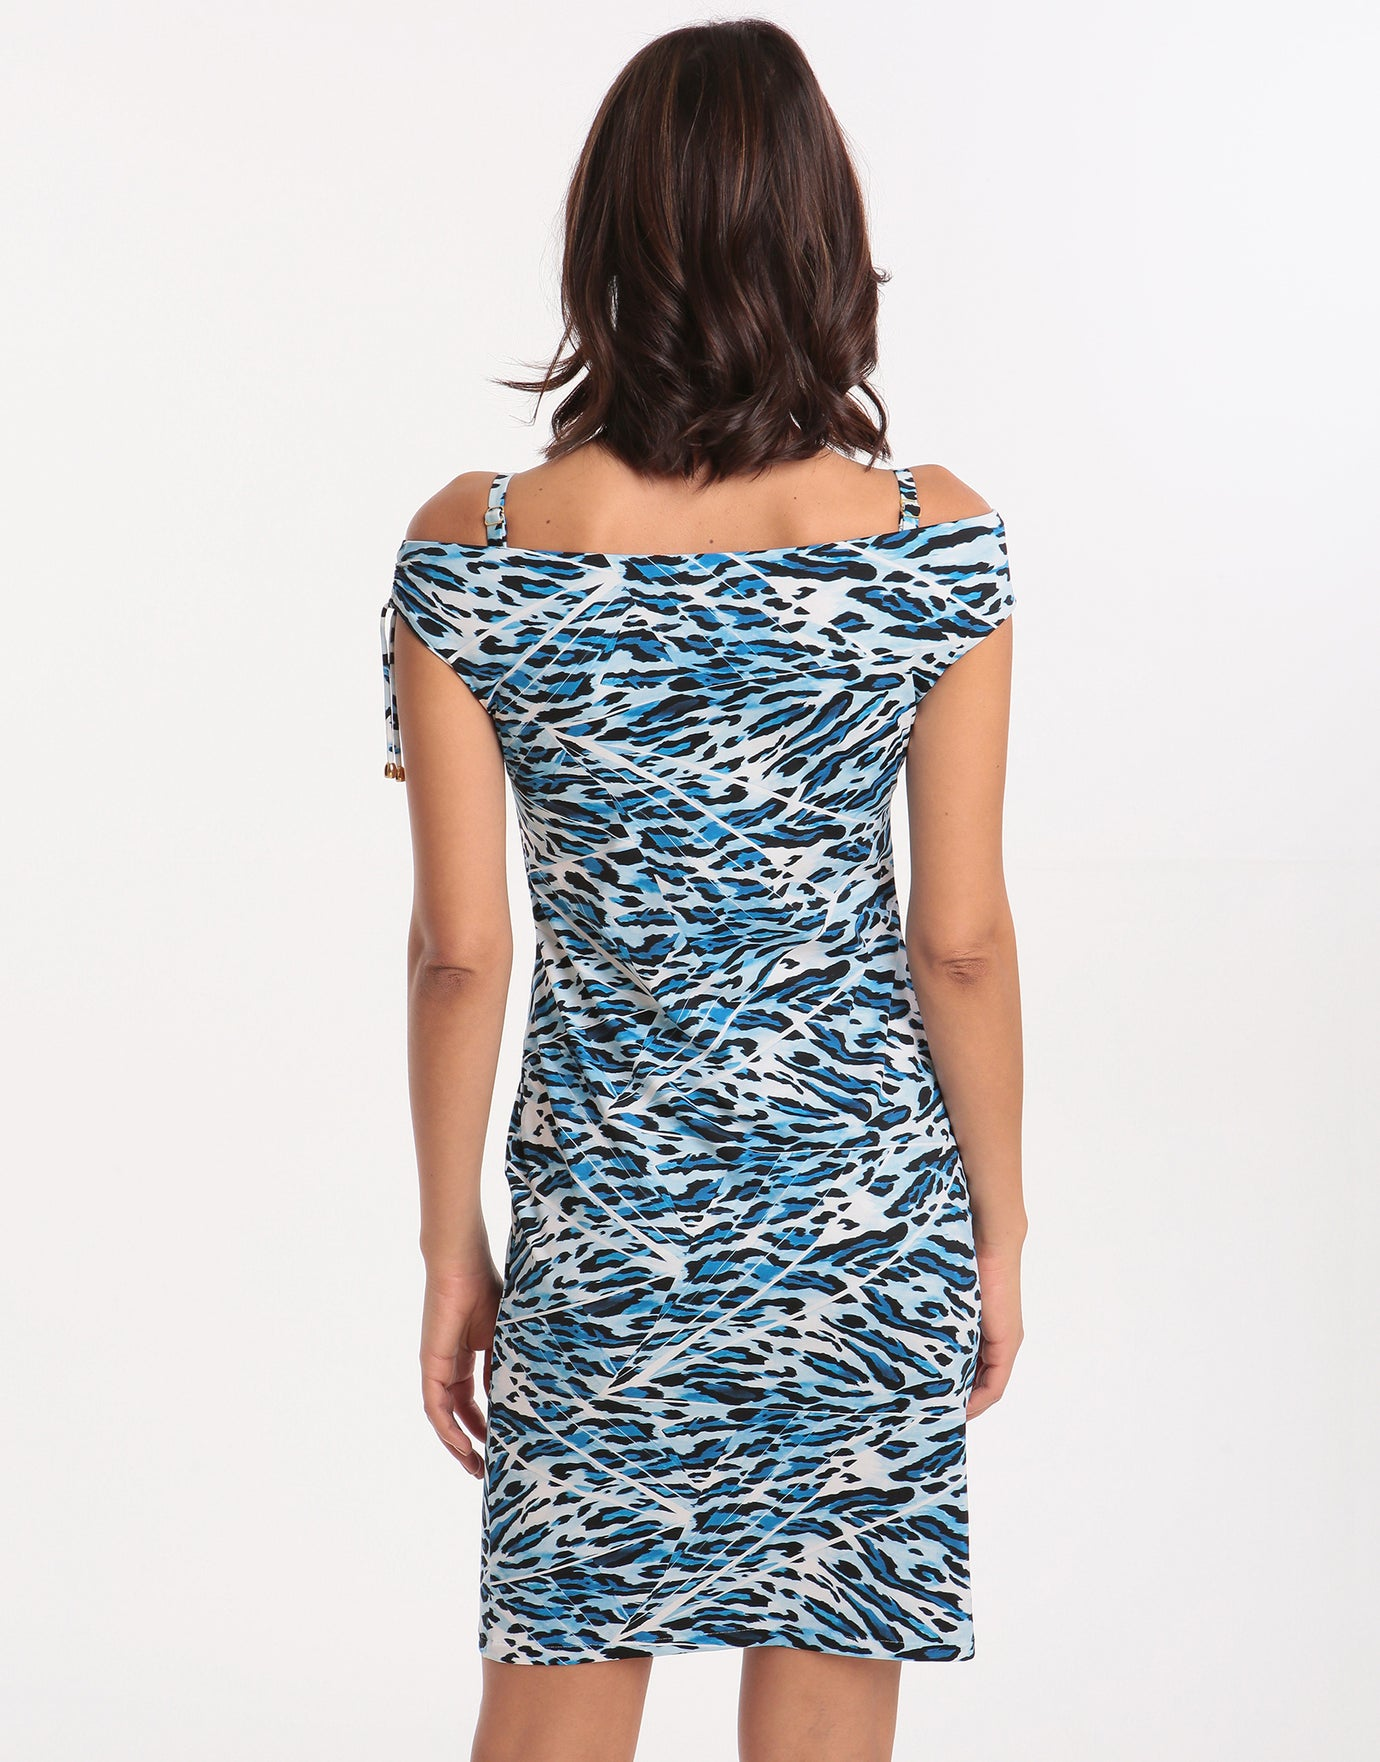 Roidal Africa Fonti Dress - Blue